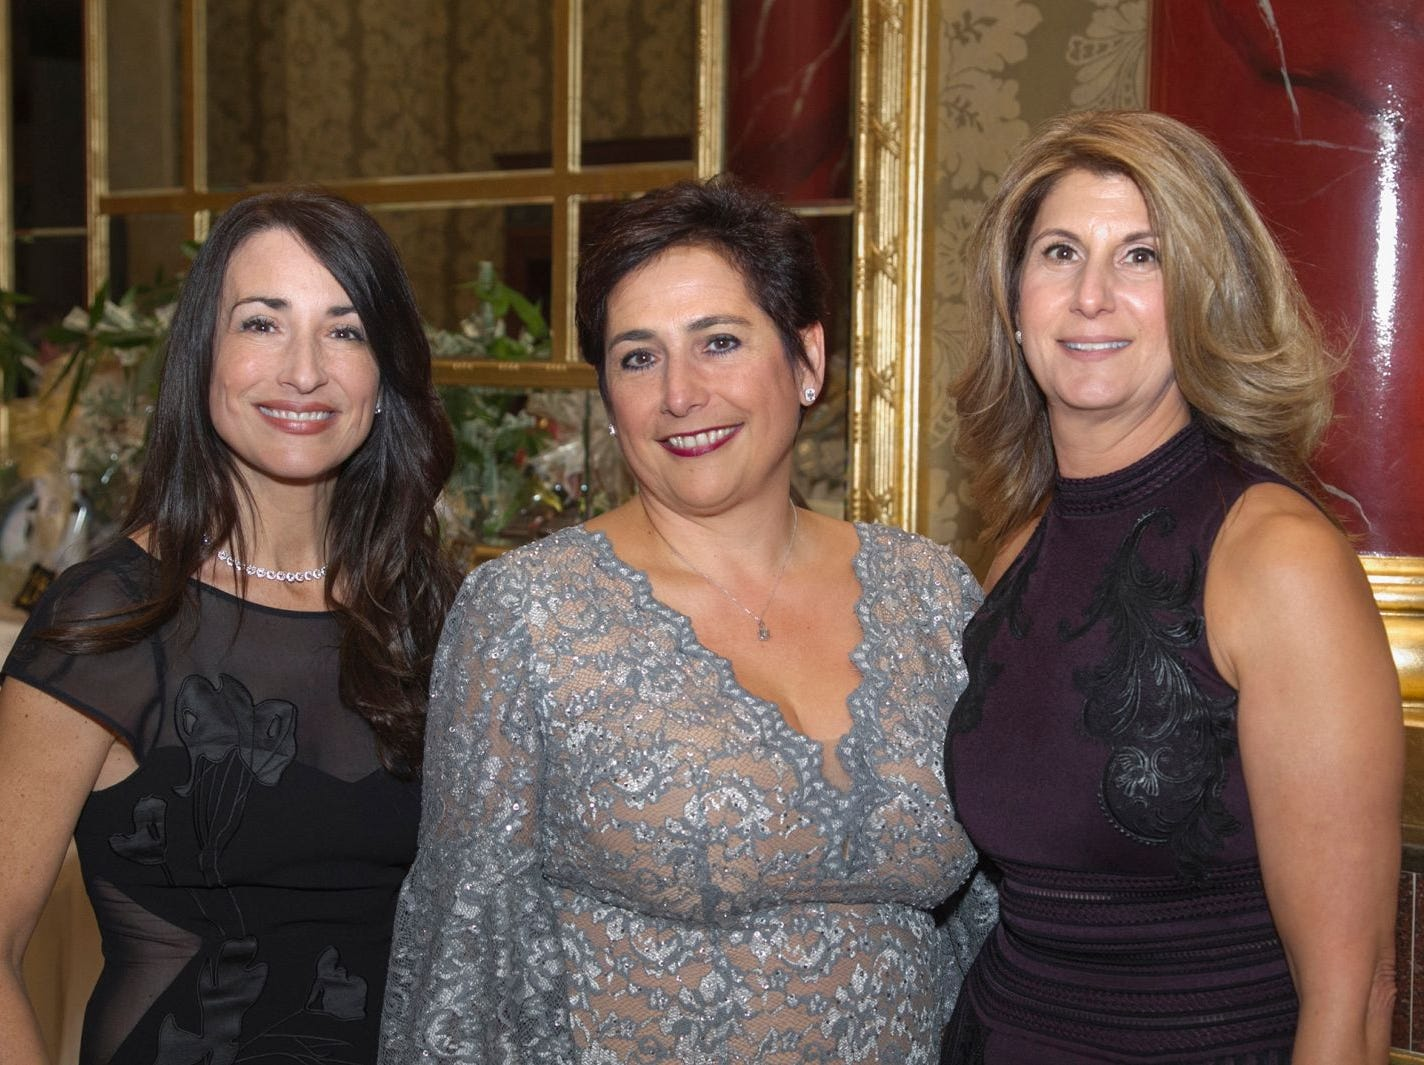 Allison Orecchio, Gina Dongrais, Audrey Soussou. Saint John the Theologian 50th Anniversary gala Dinner at The Venetian in Garfield. 10/04/2018